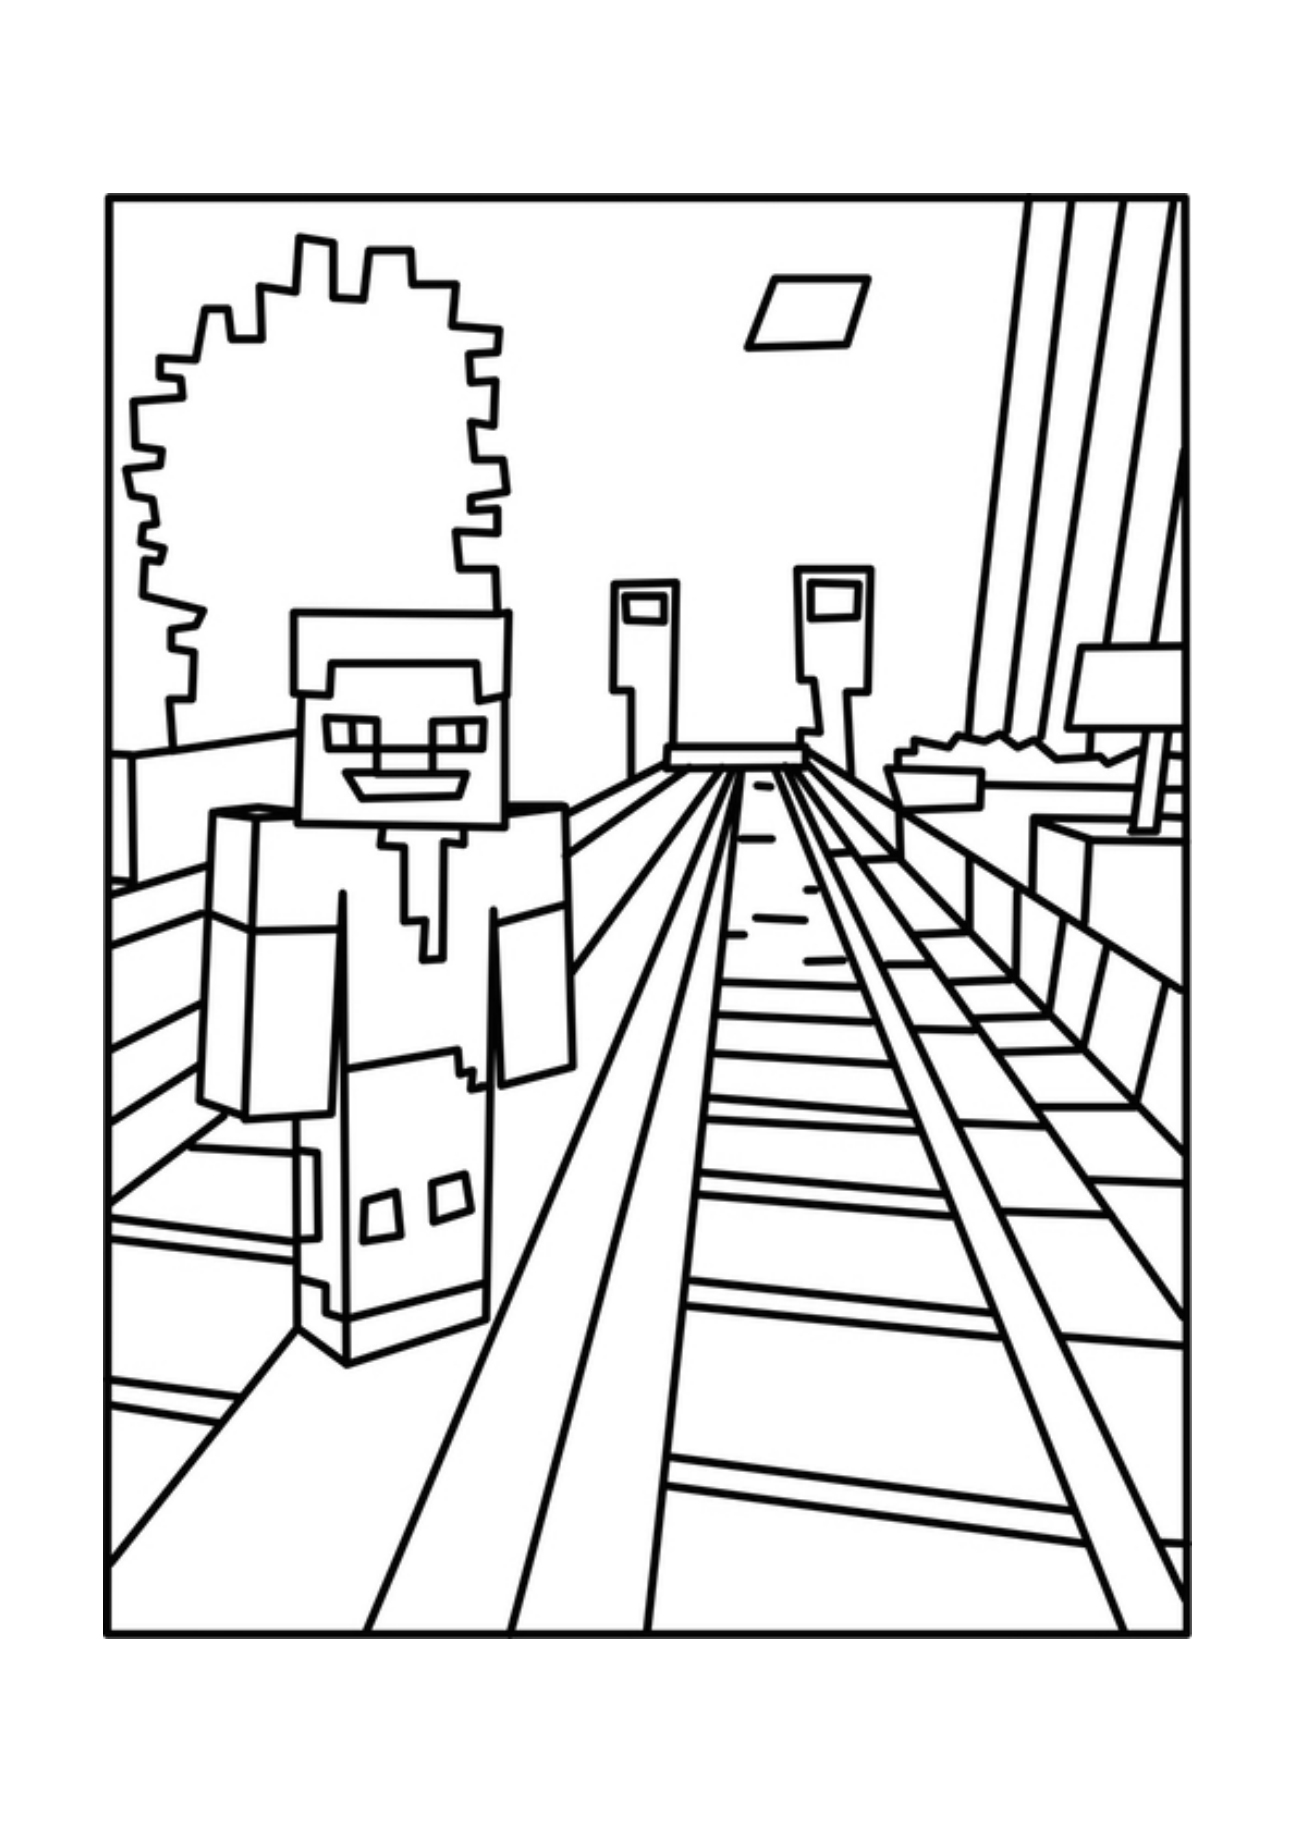 Minecraft Coloring Book Download : Printable Minecraft Coloring Pages AZ Coloring Pages